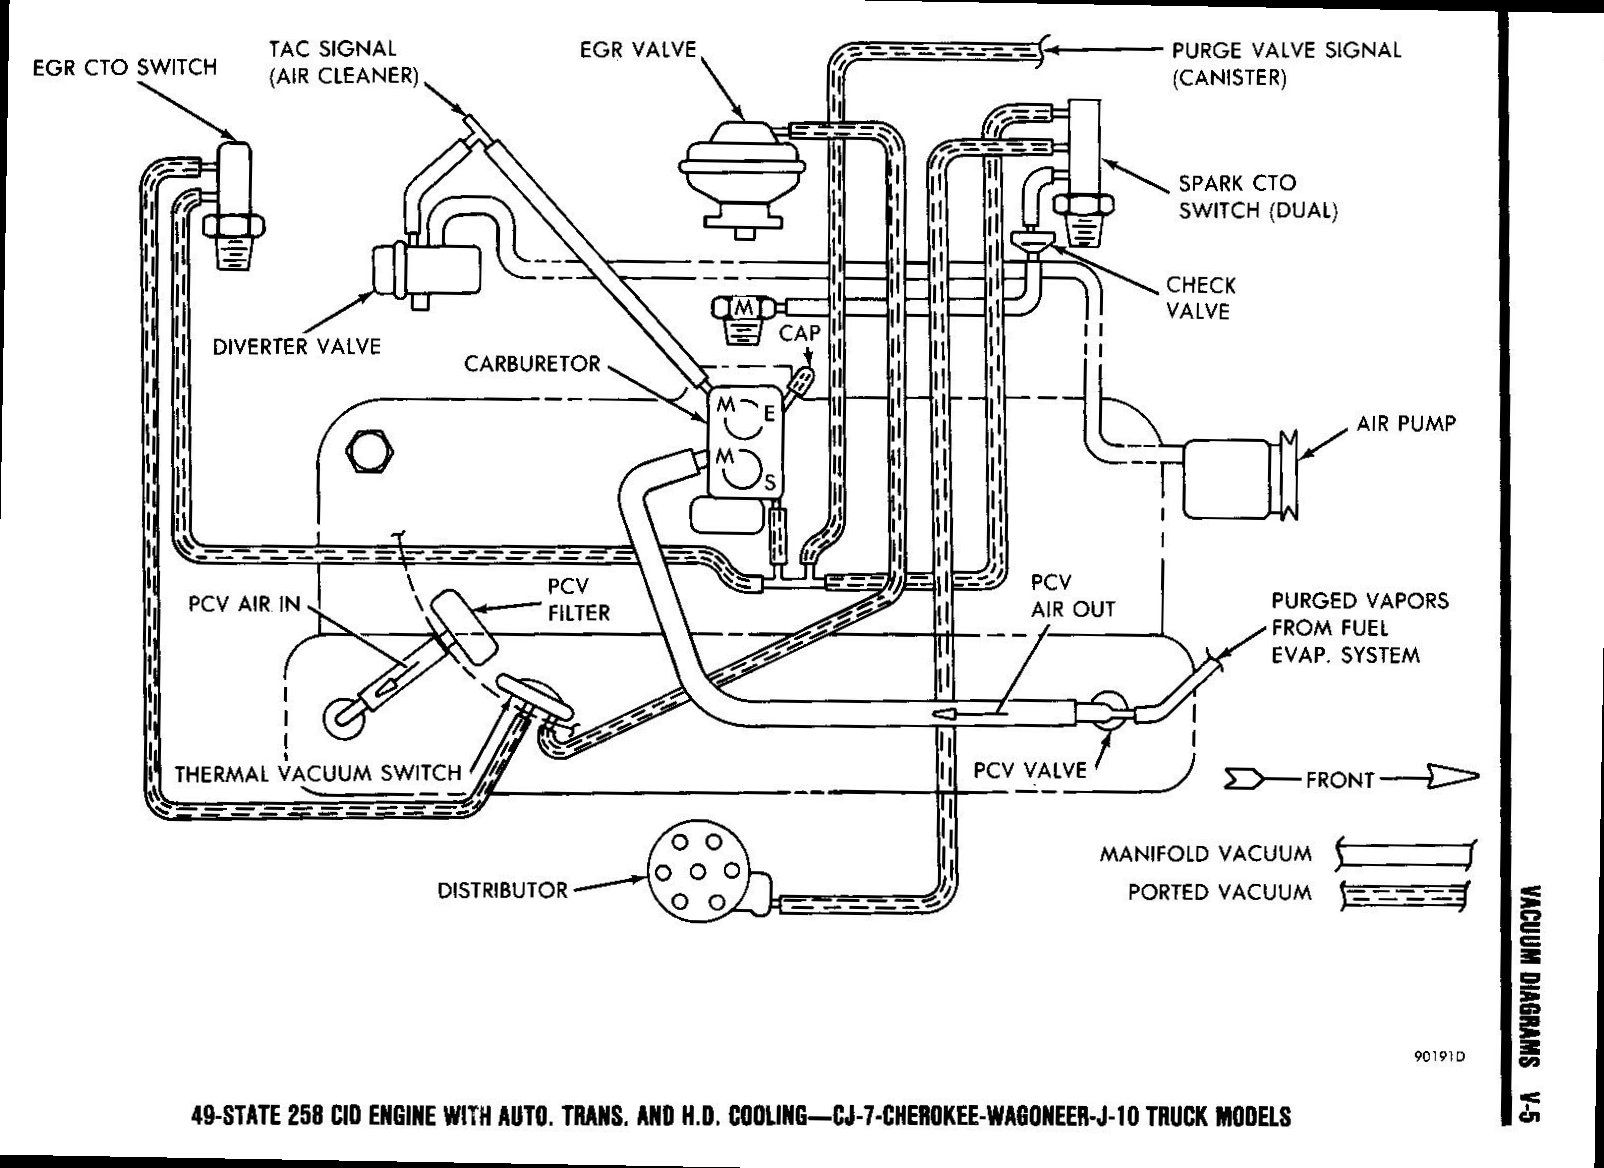 hight resolution of jeep cj5 engine diagram wiring diagram list 1985 jeep cj7 engine wiring diagram jeep cj5 4